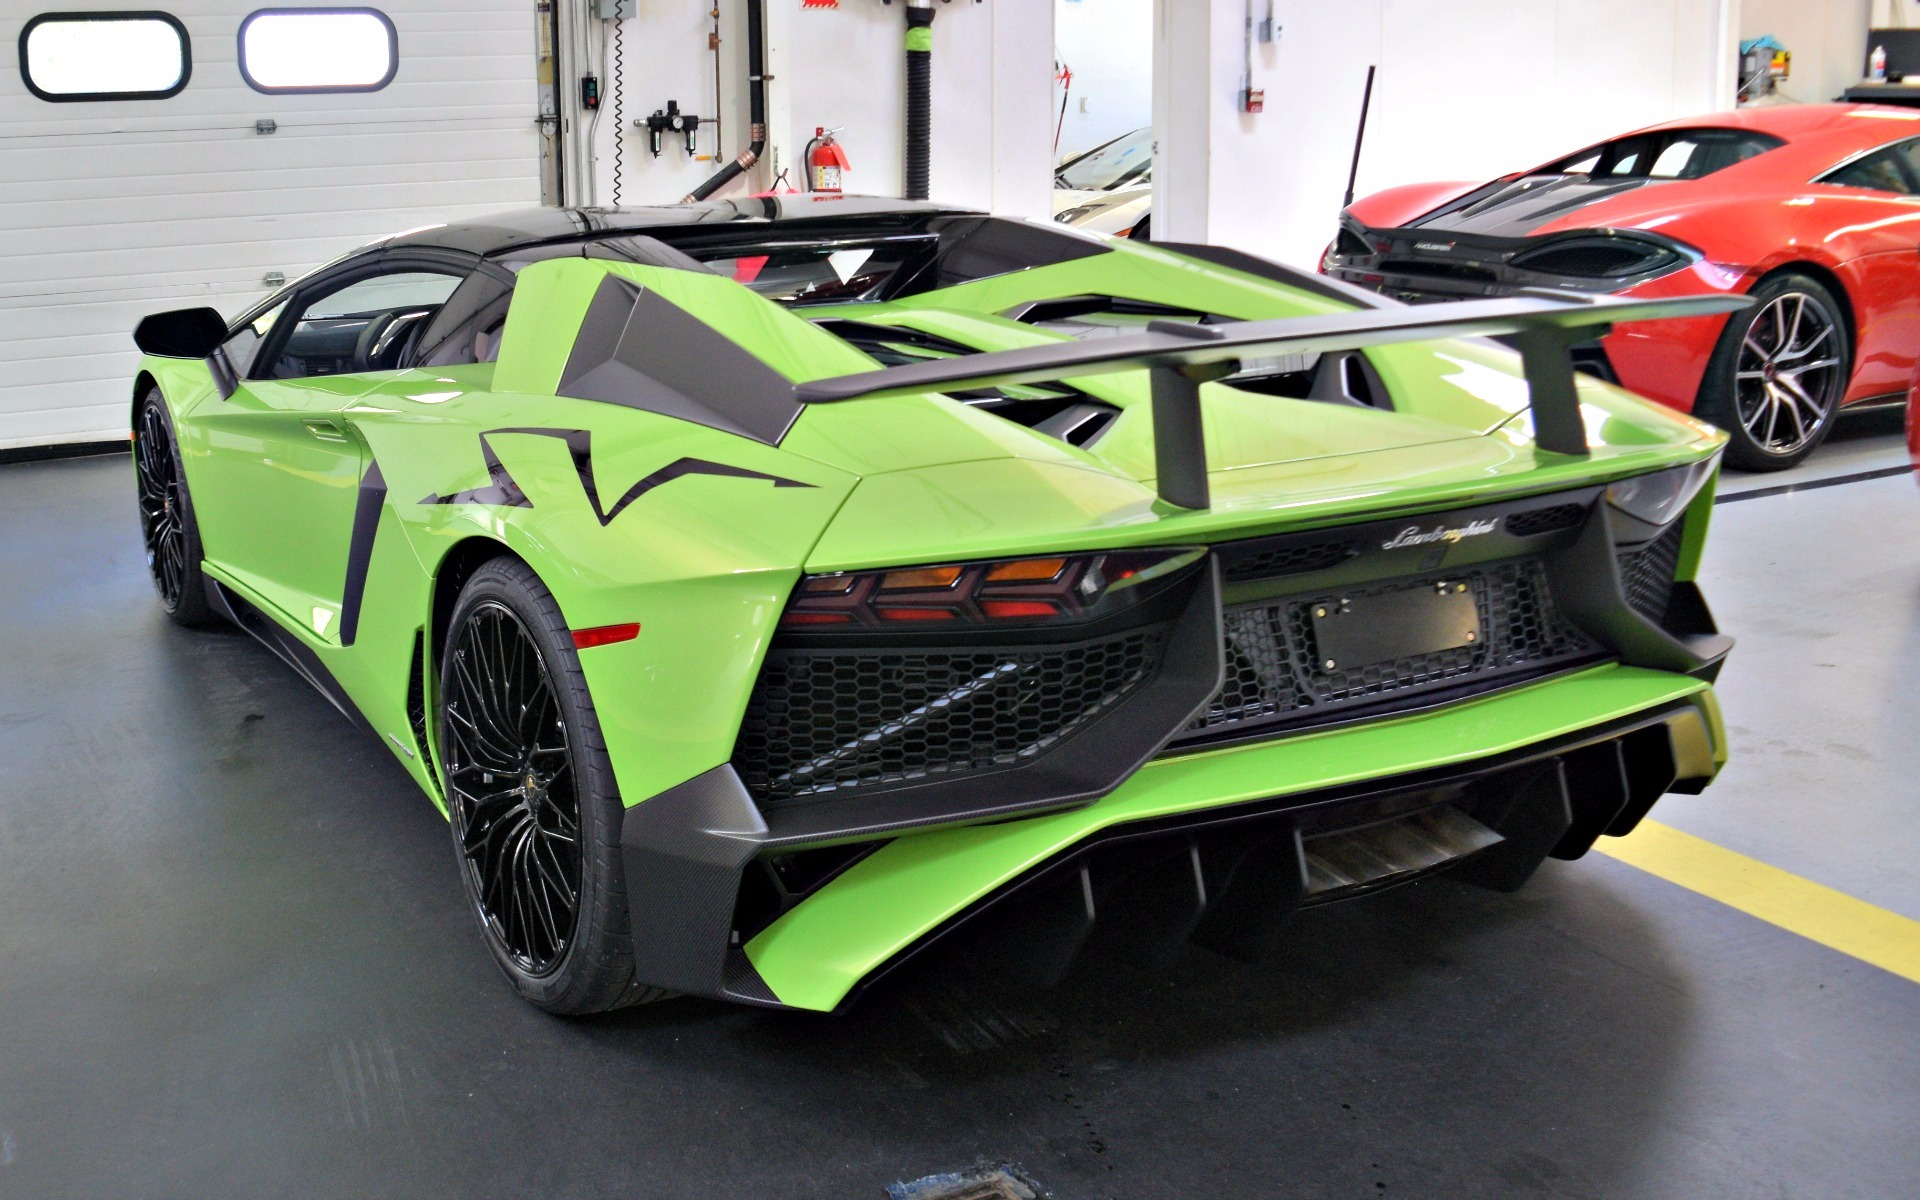 2017 Lamborghini Aventador Lp 750 4 Sv For Sale In Norwell Ma